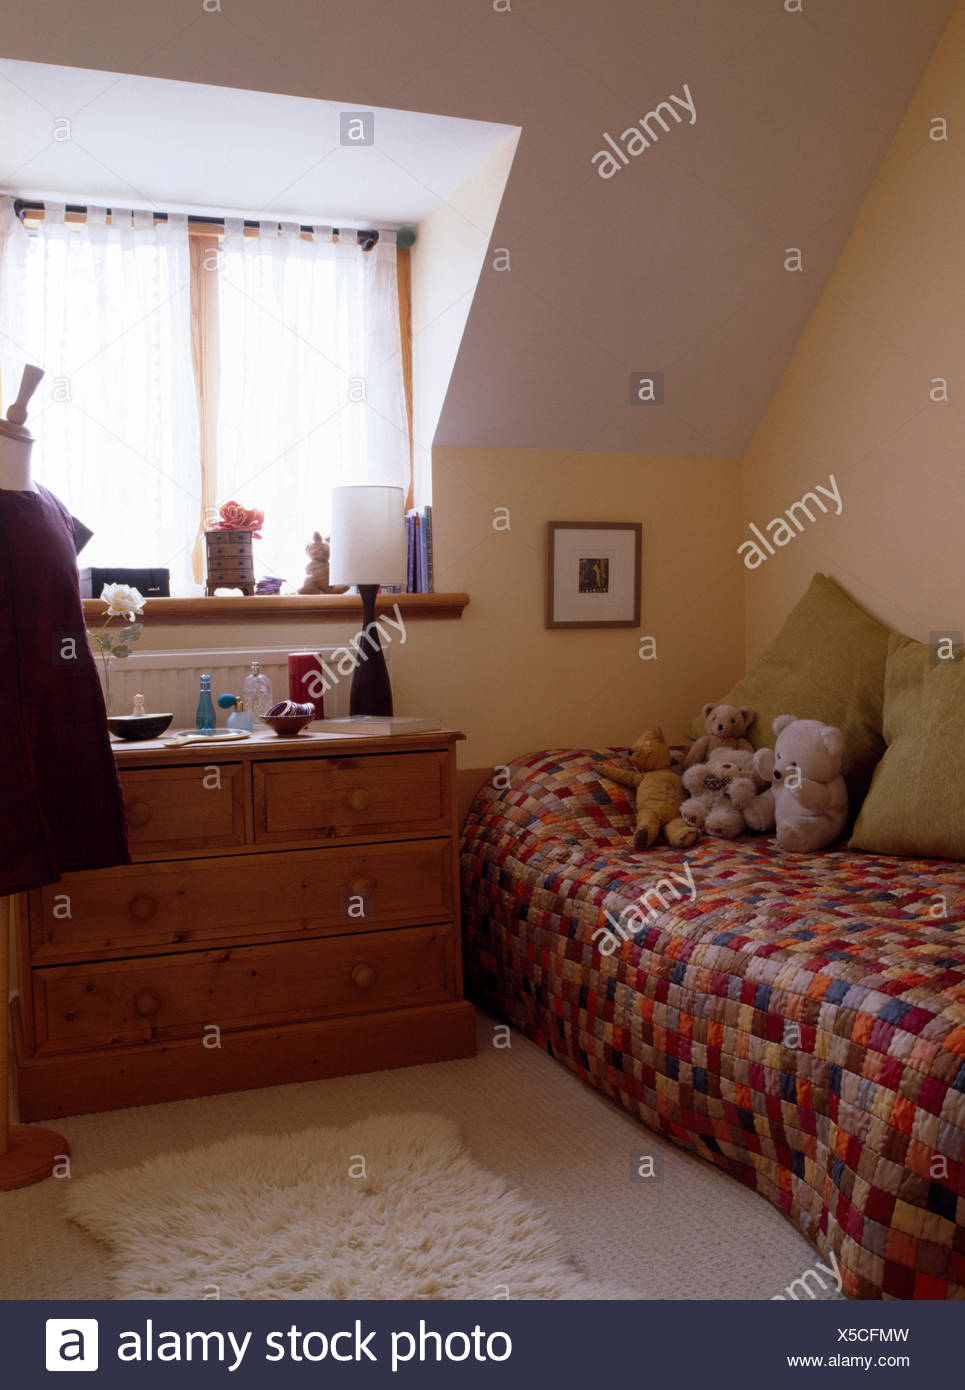 Patchwork quilt on single bed in child's attic bedroom with pine chest of drawers - Stock Image